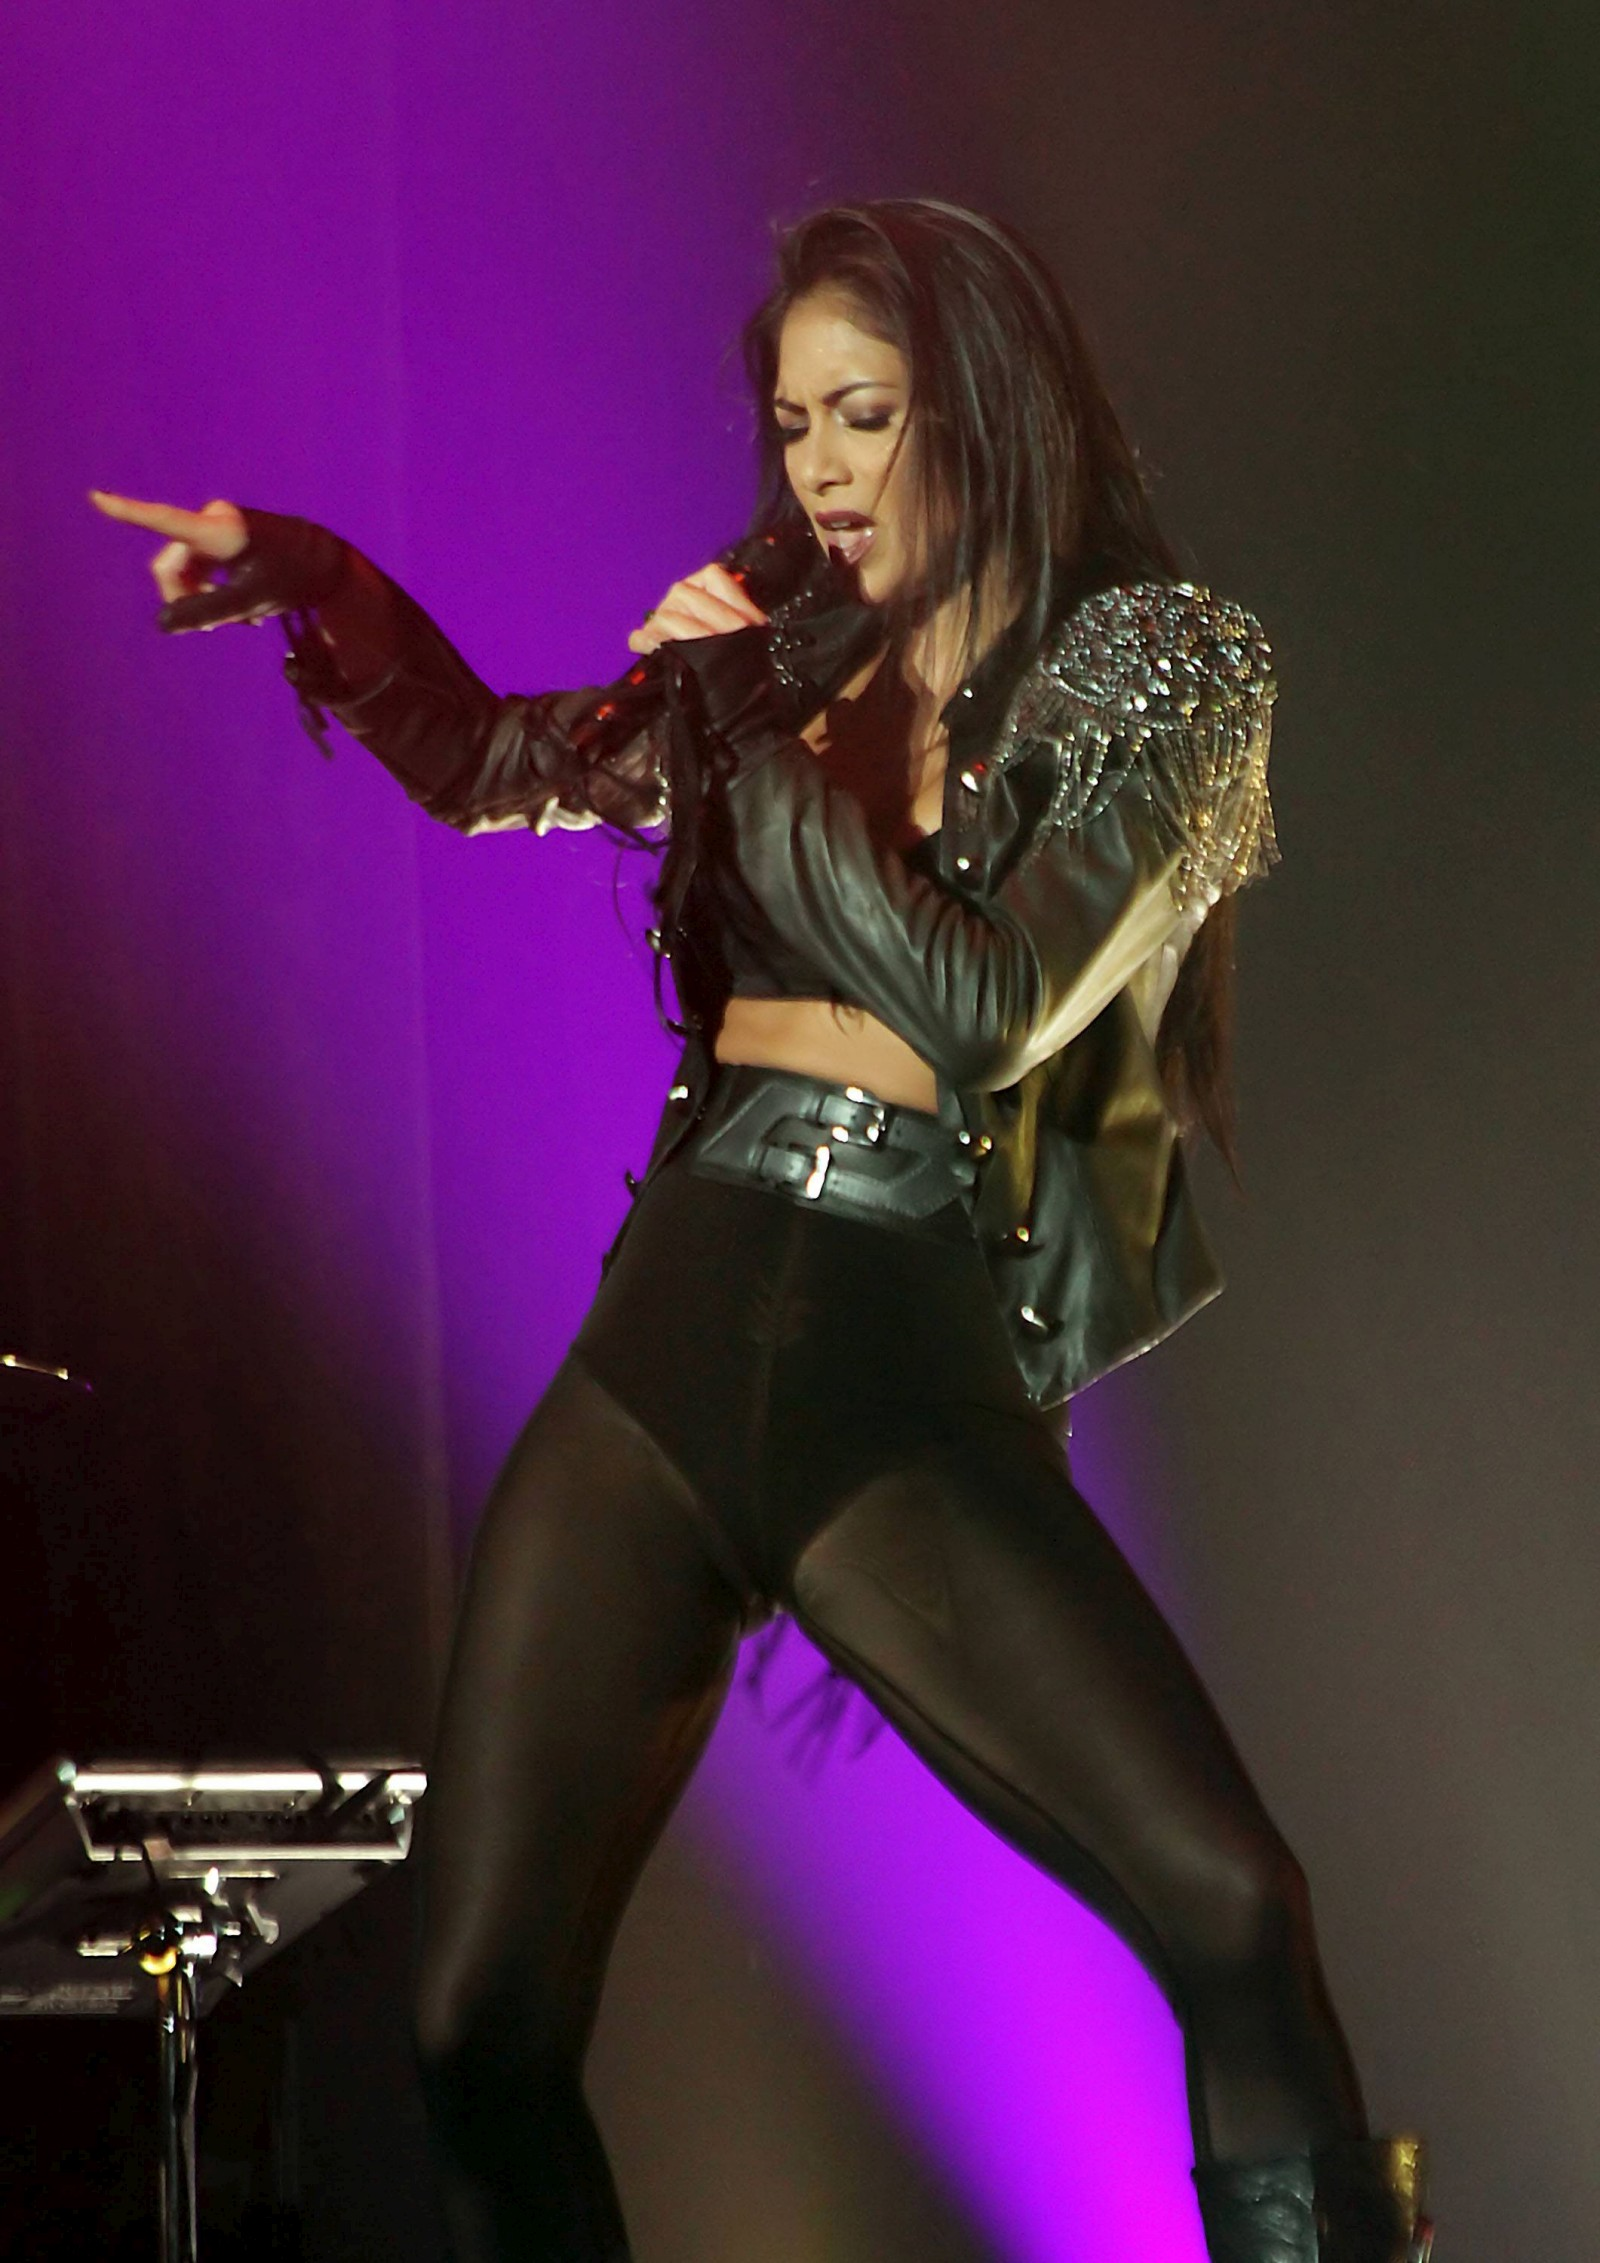 Nicole Scherzinger Performs Live in Manchester [22 February 2012]